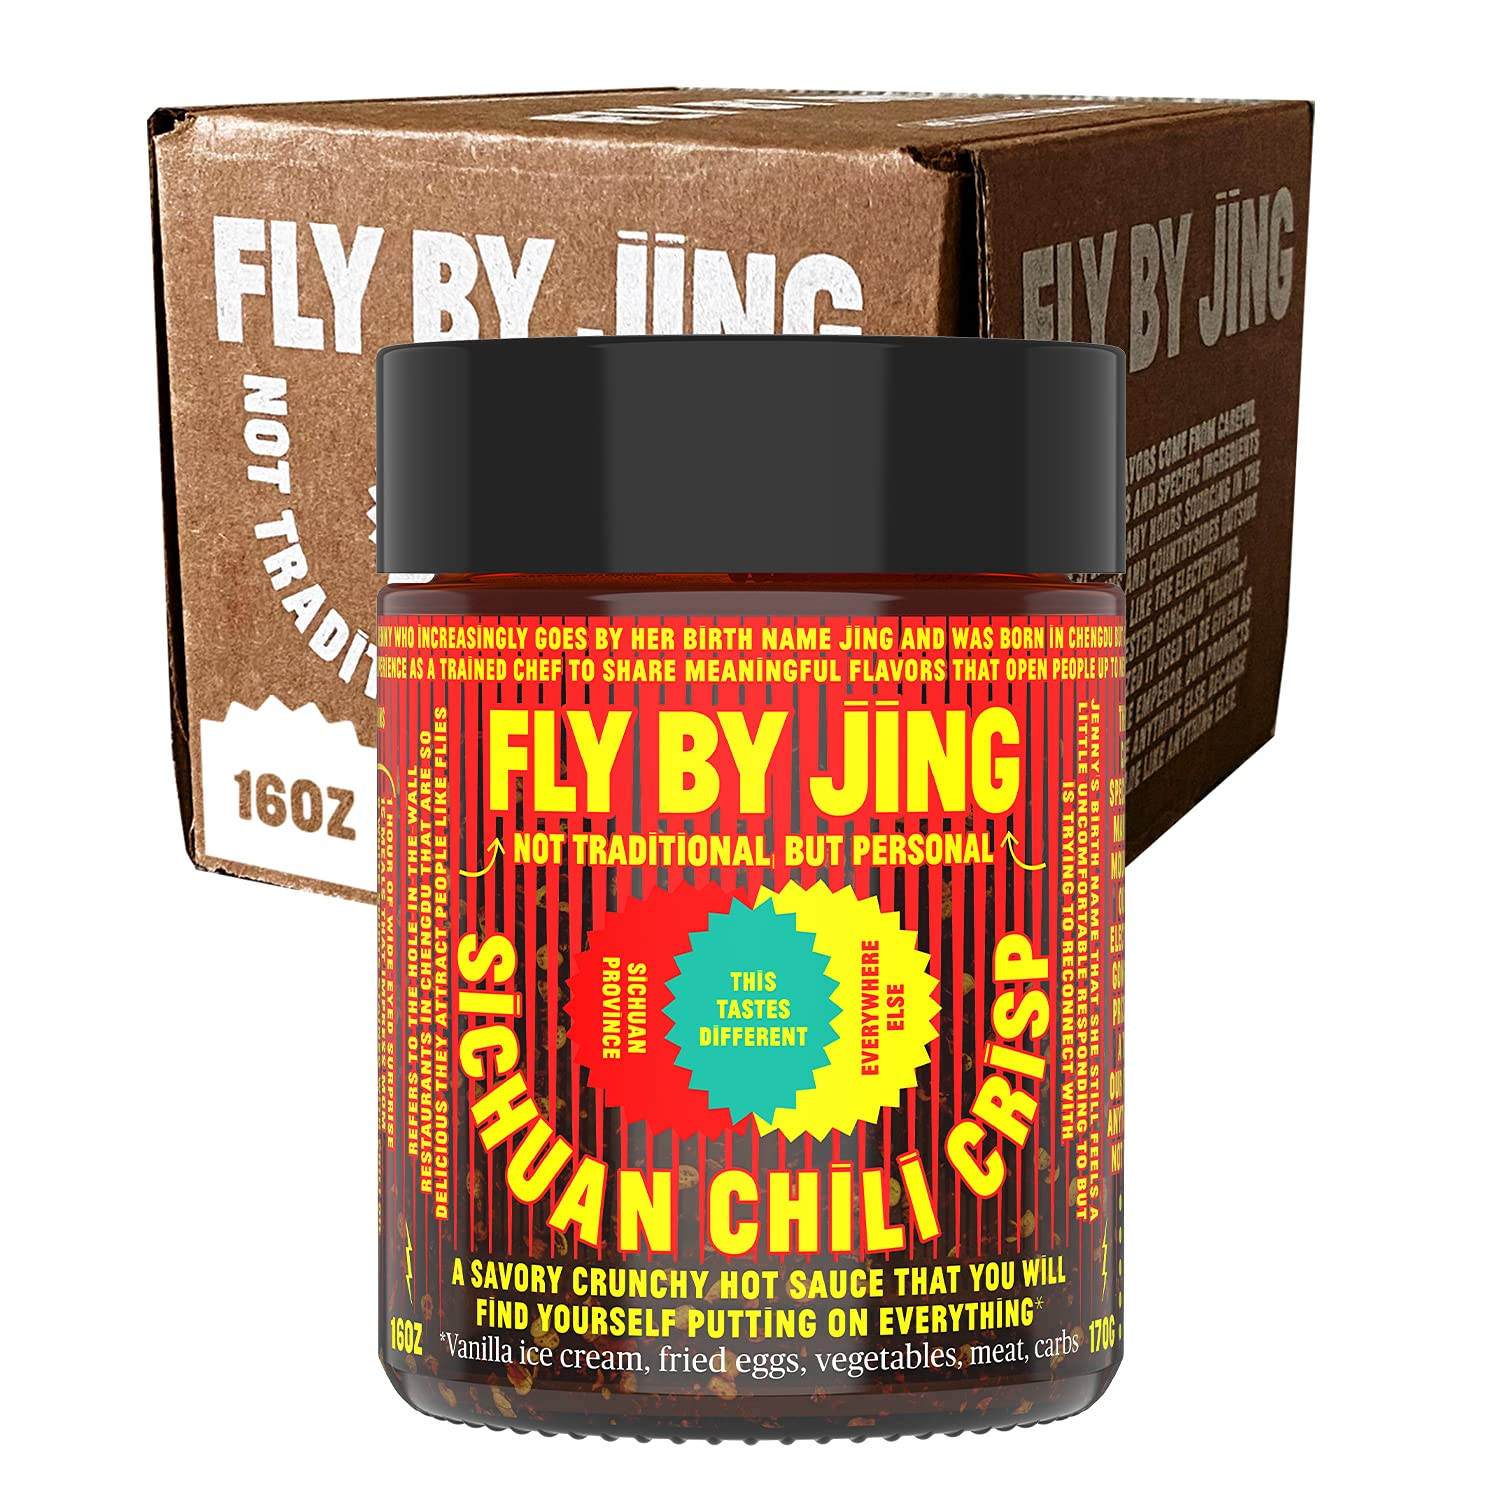 FLY BY JING Sichuan Chili Crisp 16oz XL BIG BOI | Deliciously Savory, Umami, Spicy, Tingly, Crispy All Natural Vegan Gluten-Free | Hot Chili Oil Sauce with Sichuan Pepper, Good on Everything